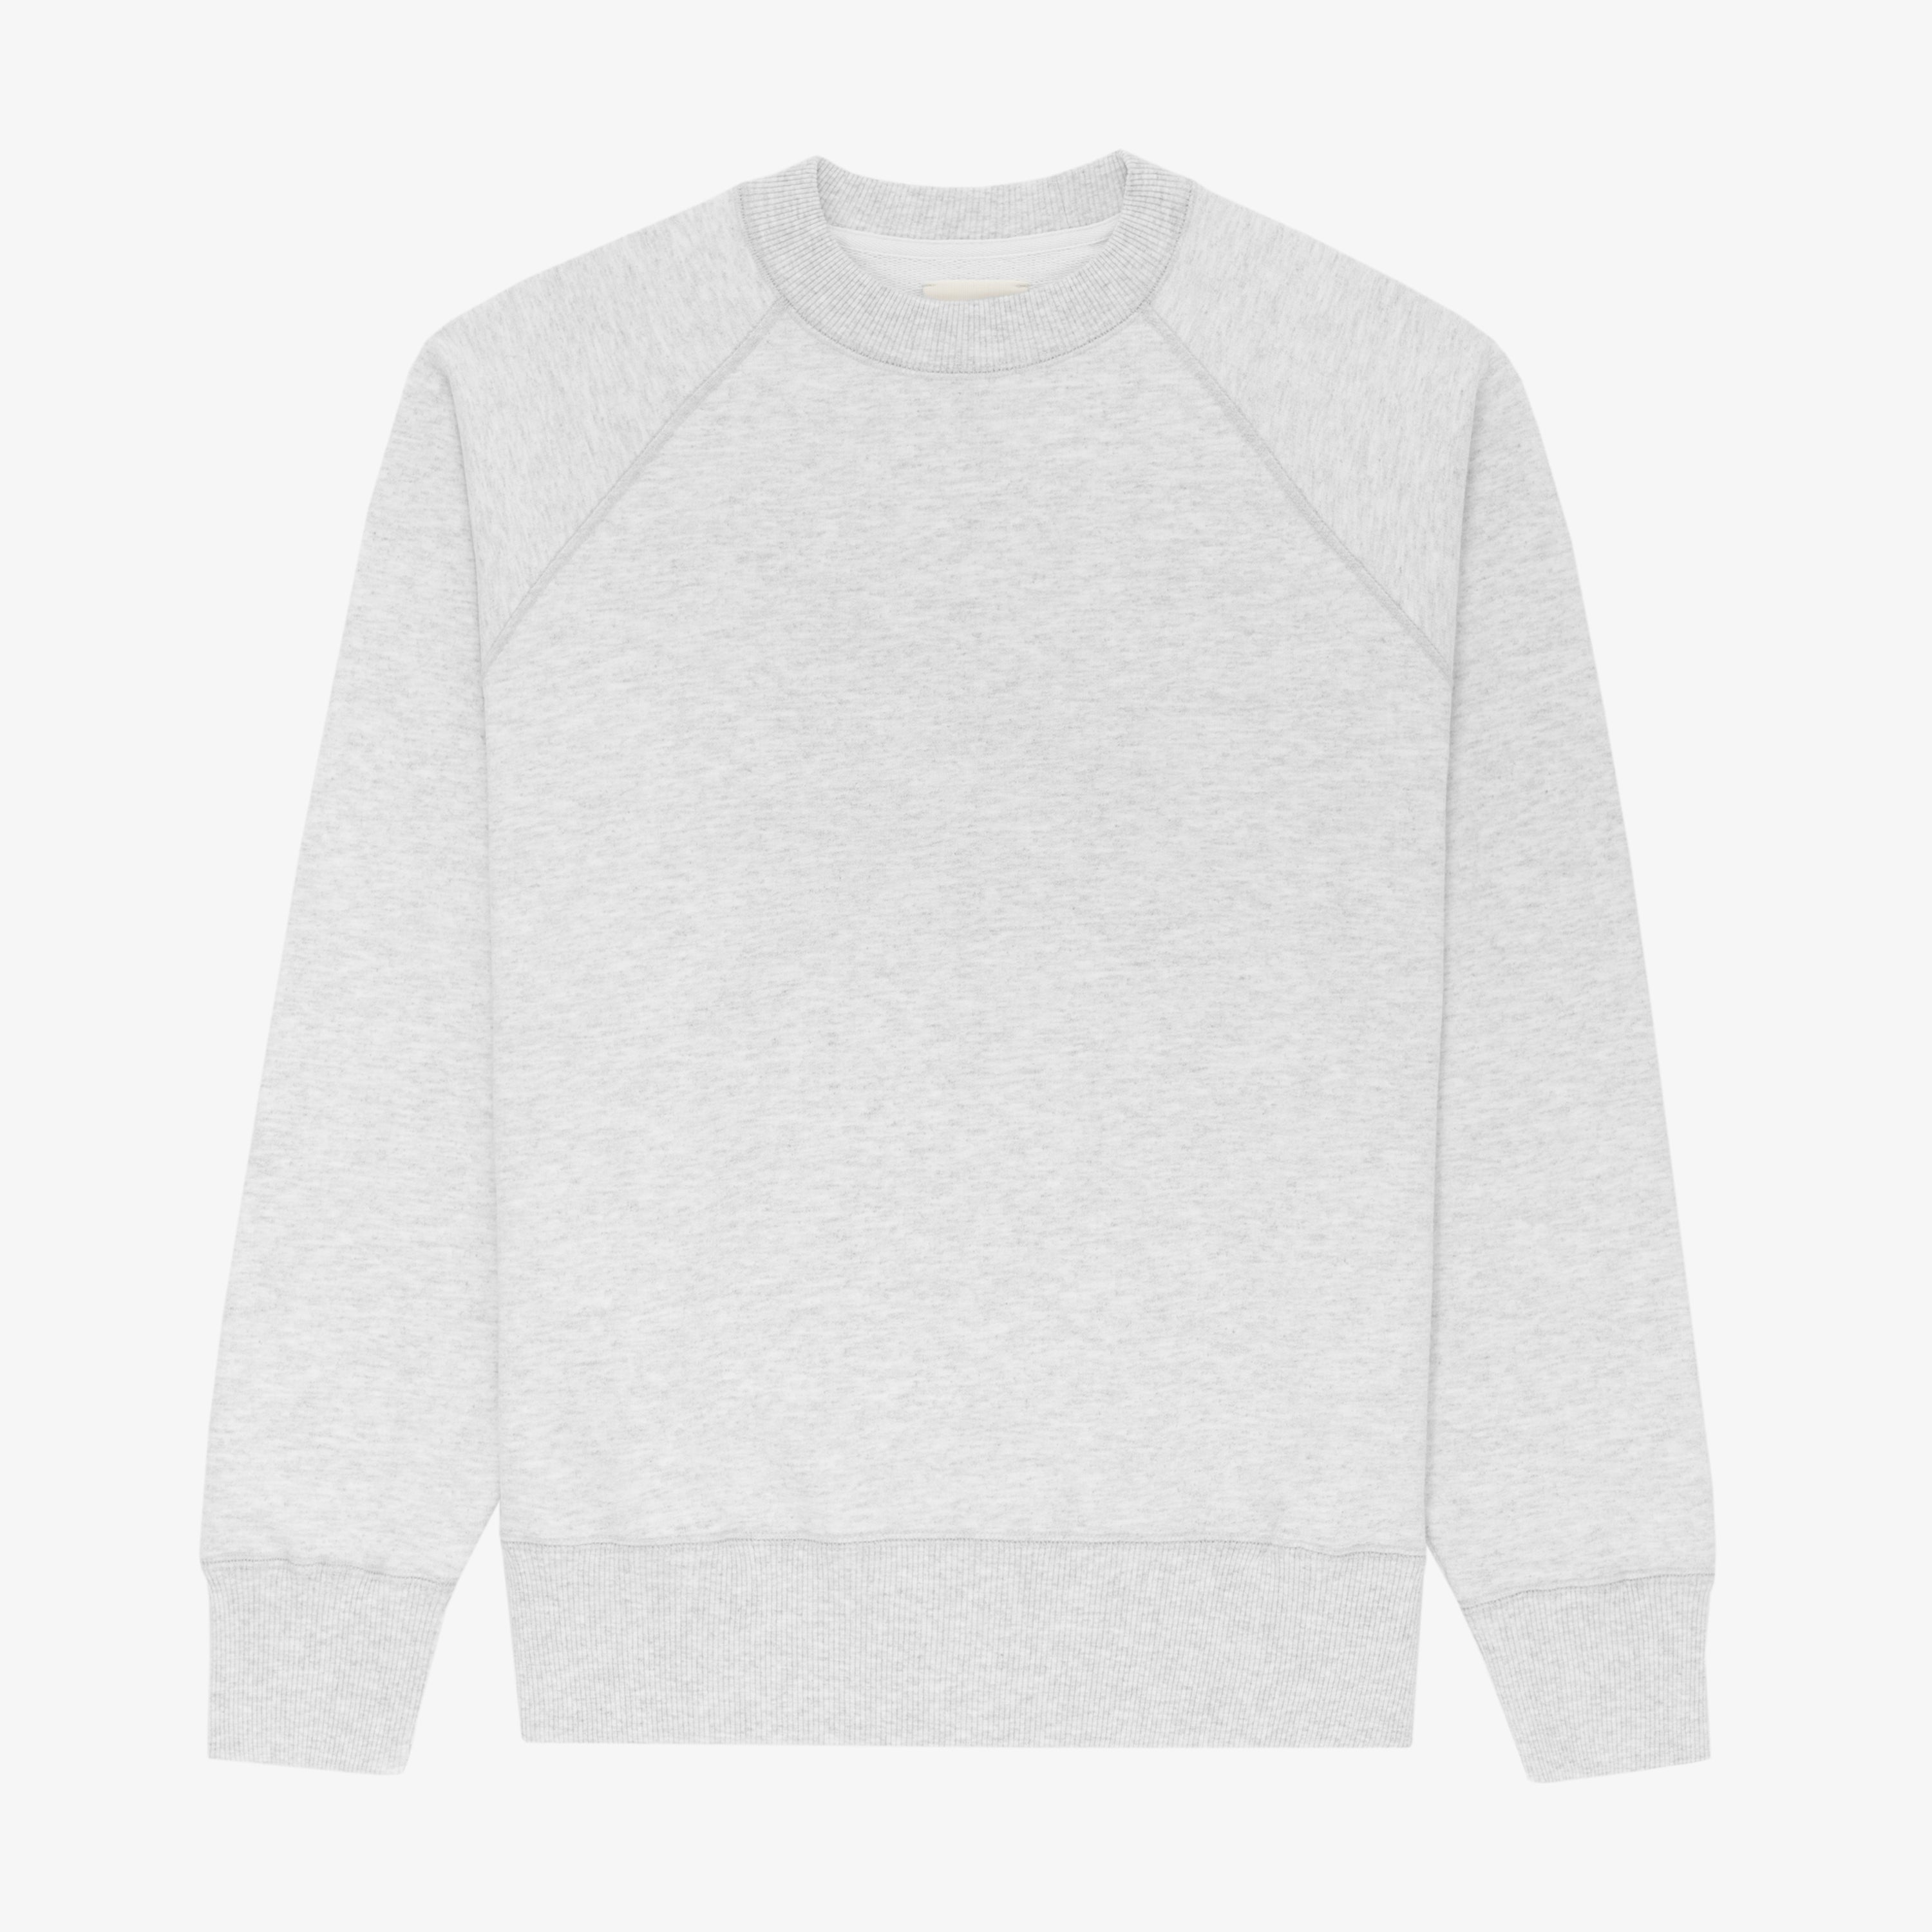 Uniform Crewneck Sweatshirt